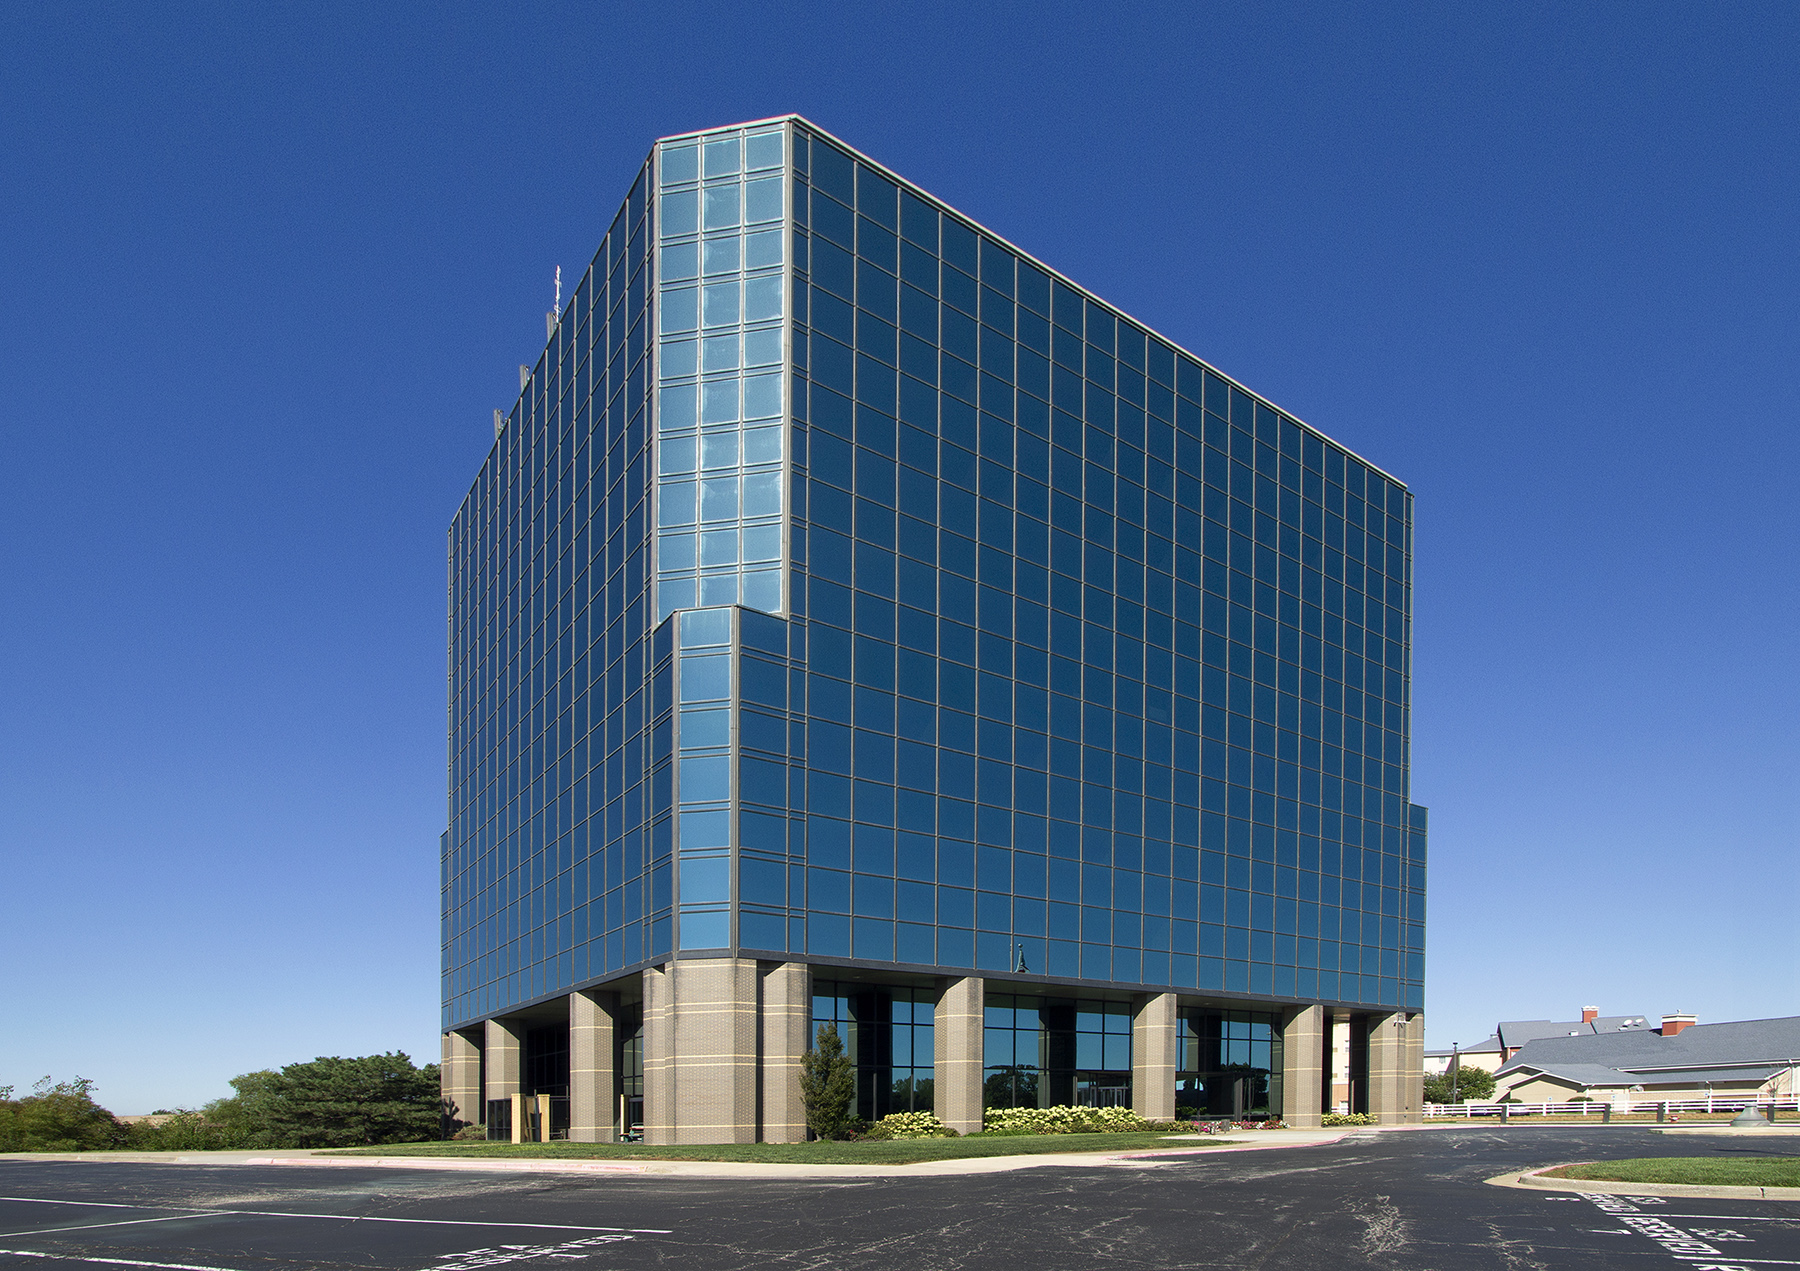 Newmark Grubb Zimmer Arranges Sale of 109,193 Square Foot Office Building in Kansas City